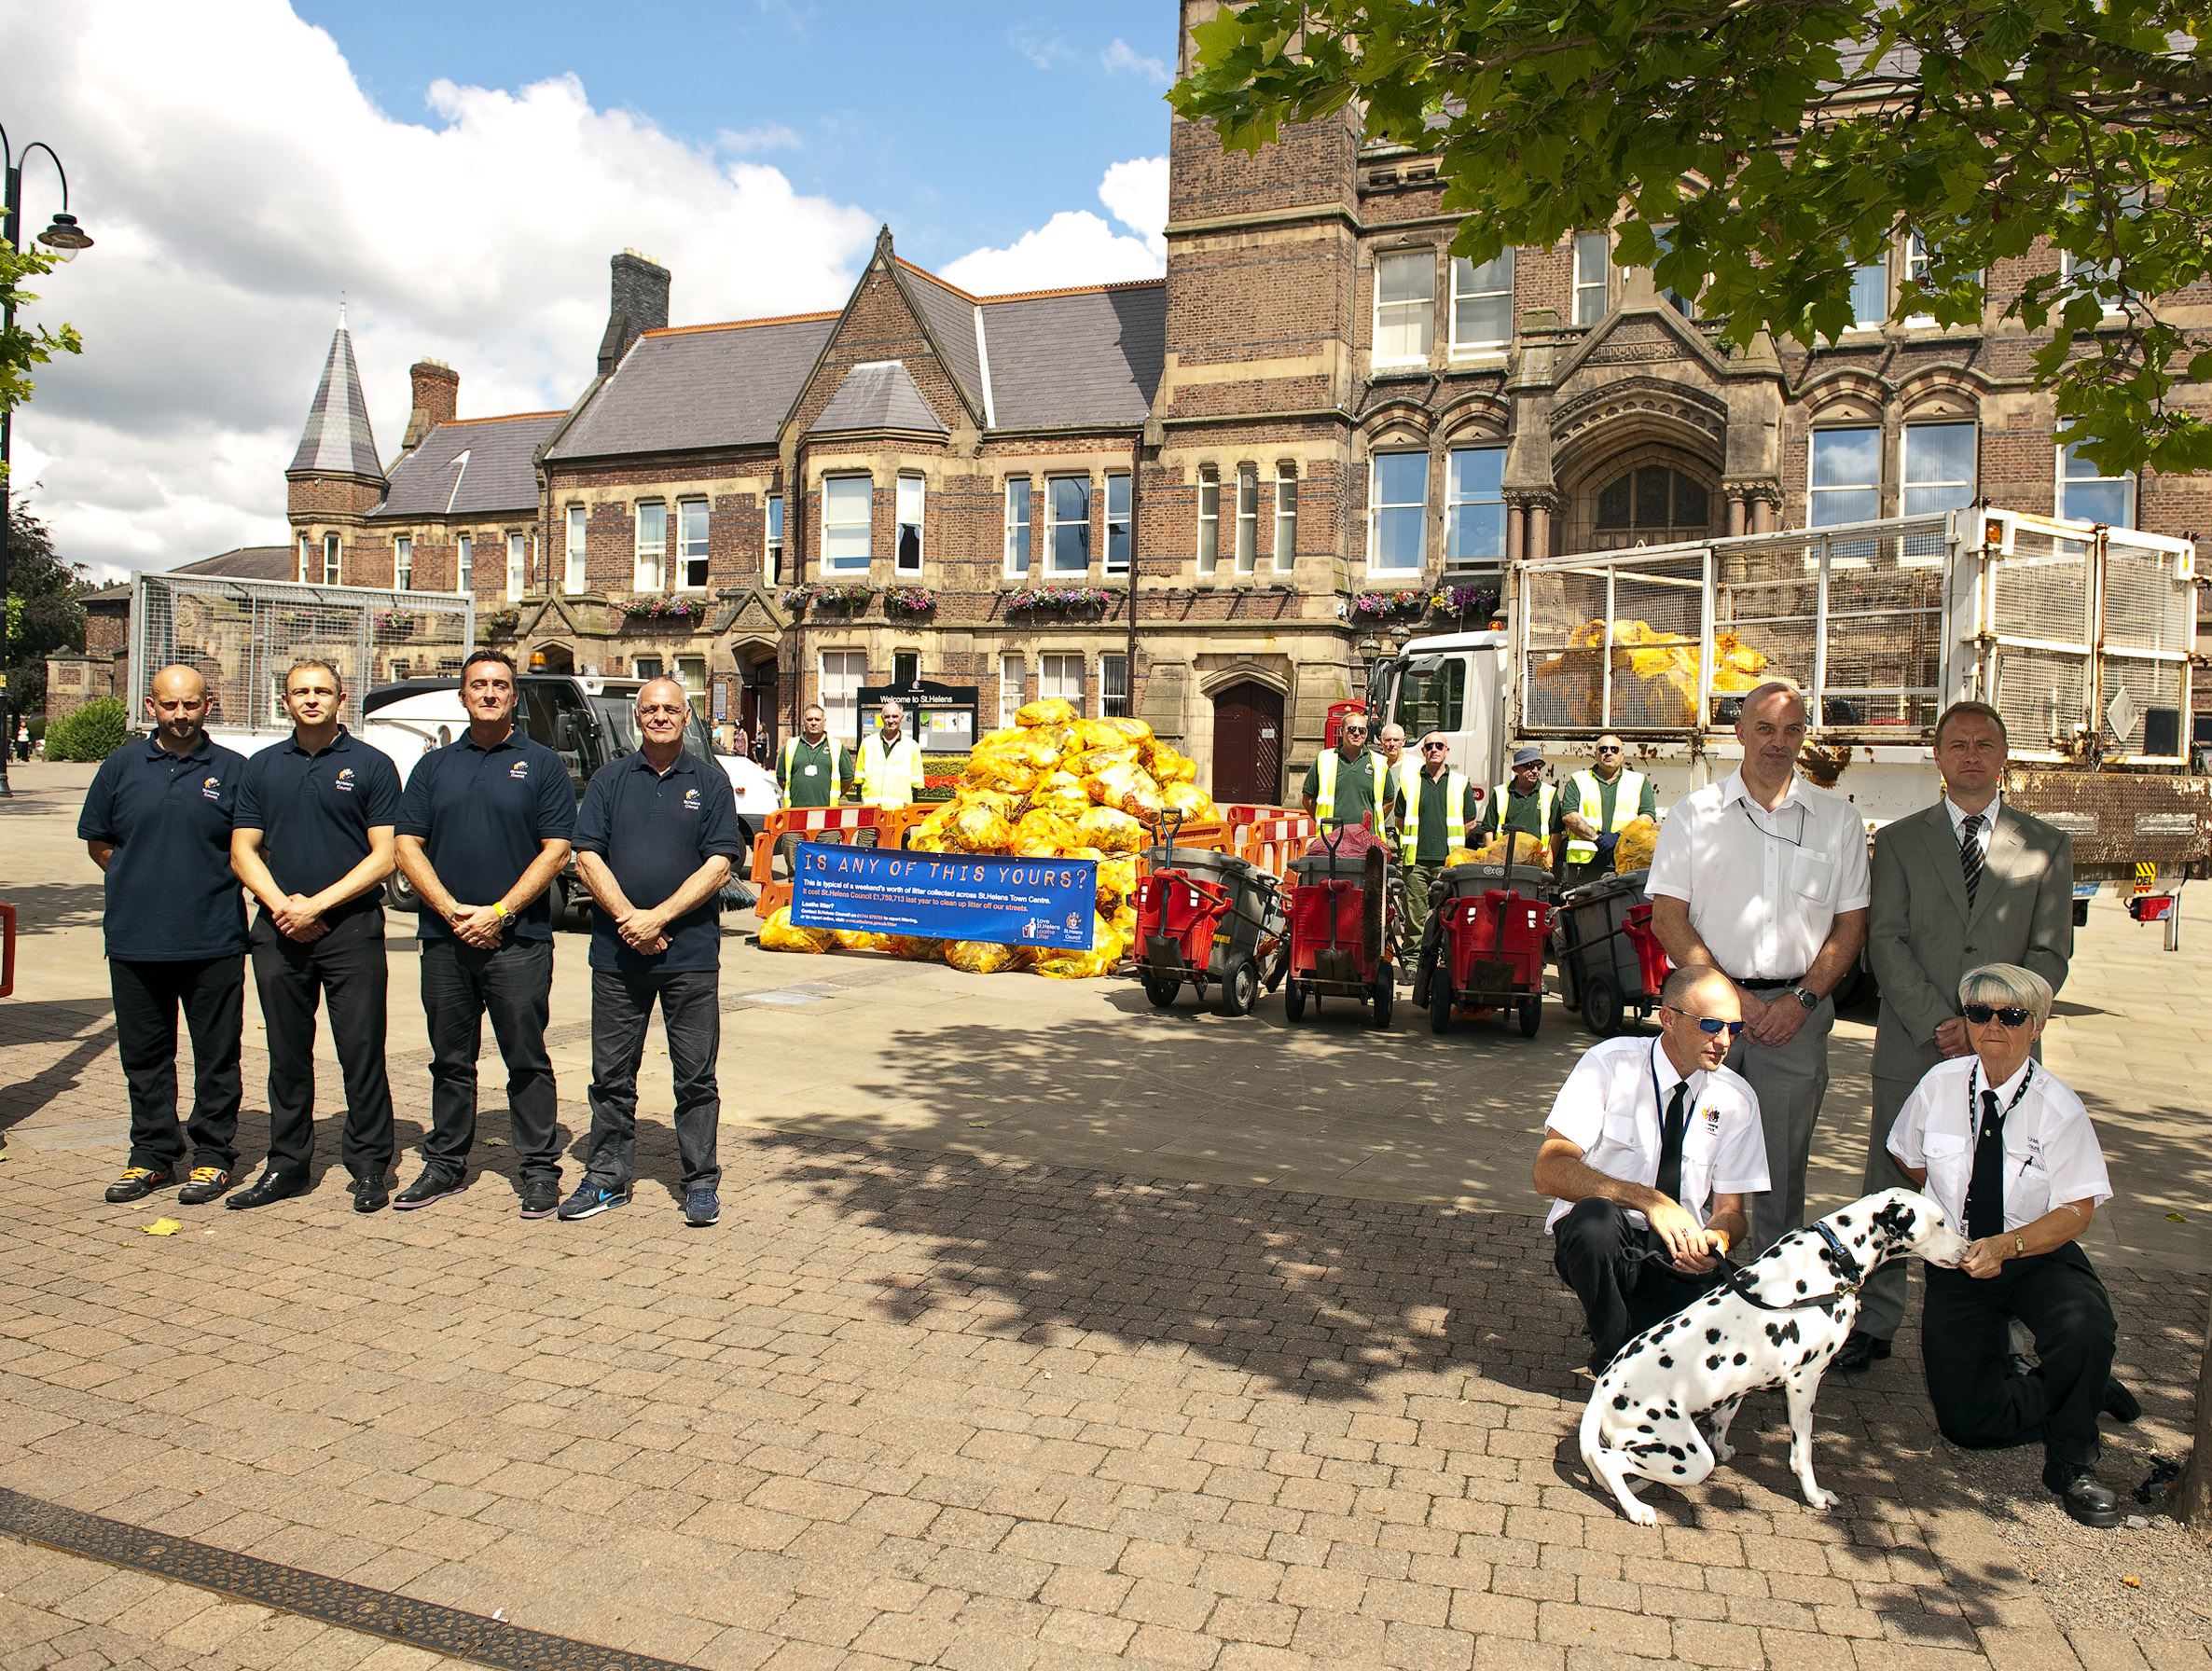 Messy affair – street cleaners and dog warden staff pictured with the mound of rubbish collected from just the town centre, dumped by litter bugs.